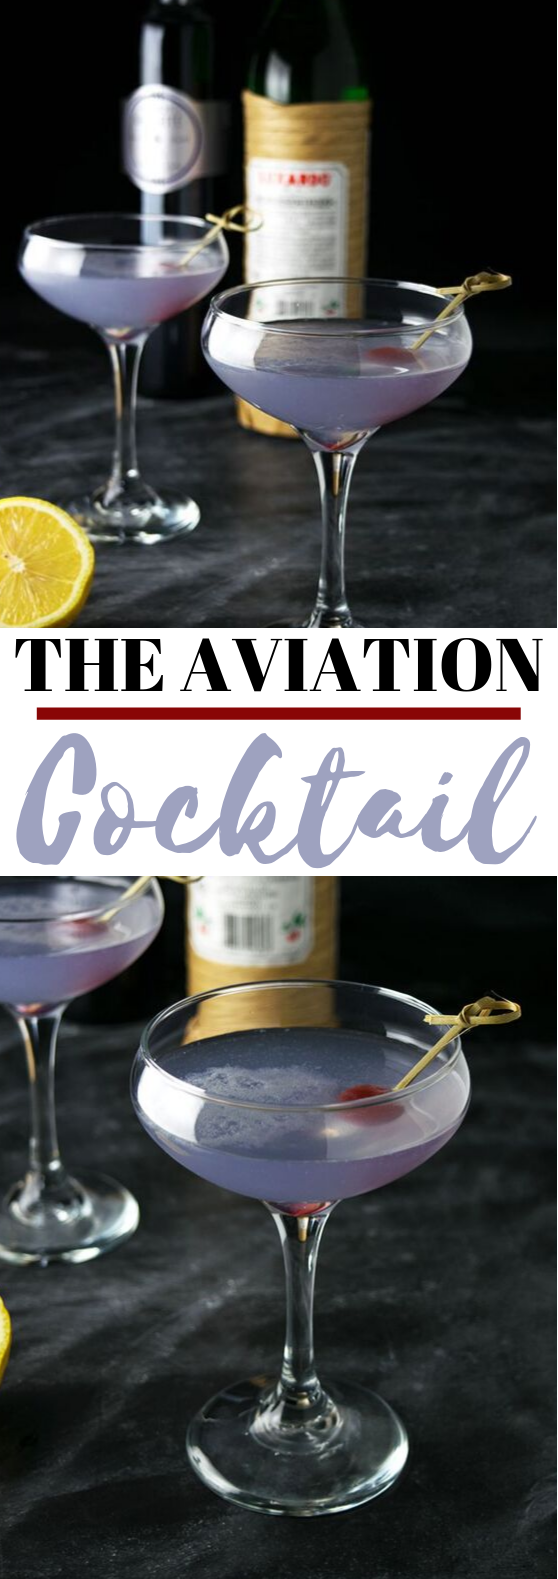 Aviation Cocktail #drinks #cocktails